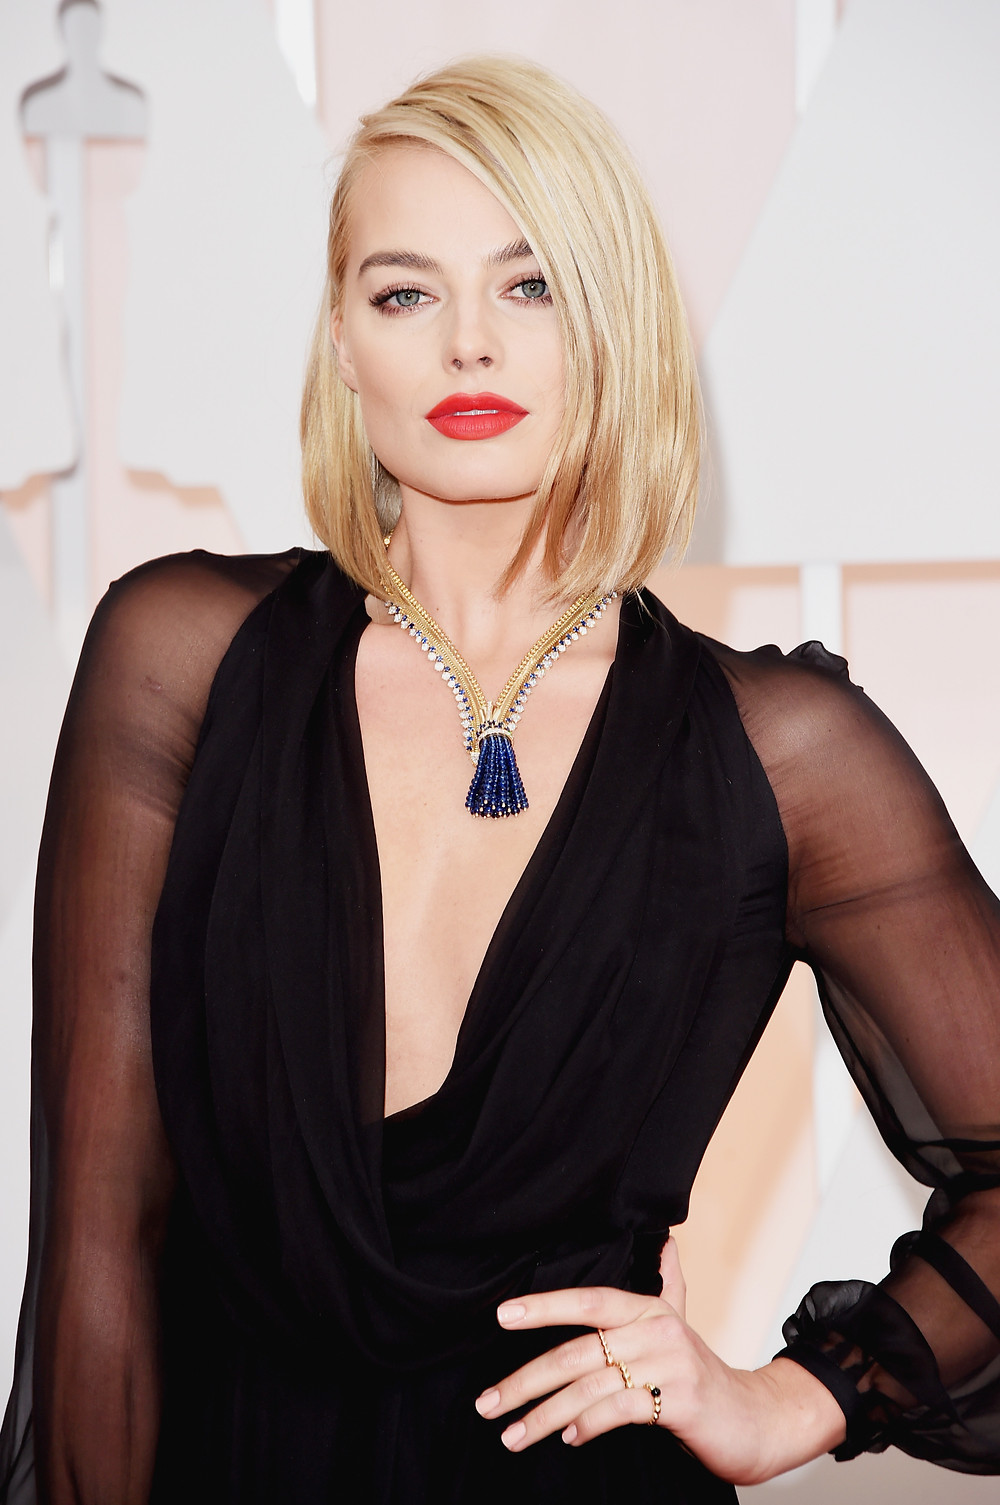 Margot-Robbie-Oscars-2015-hires.jpg